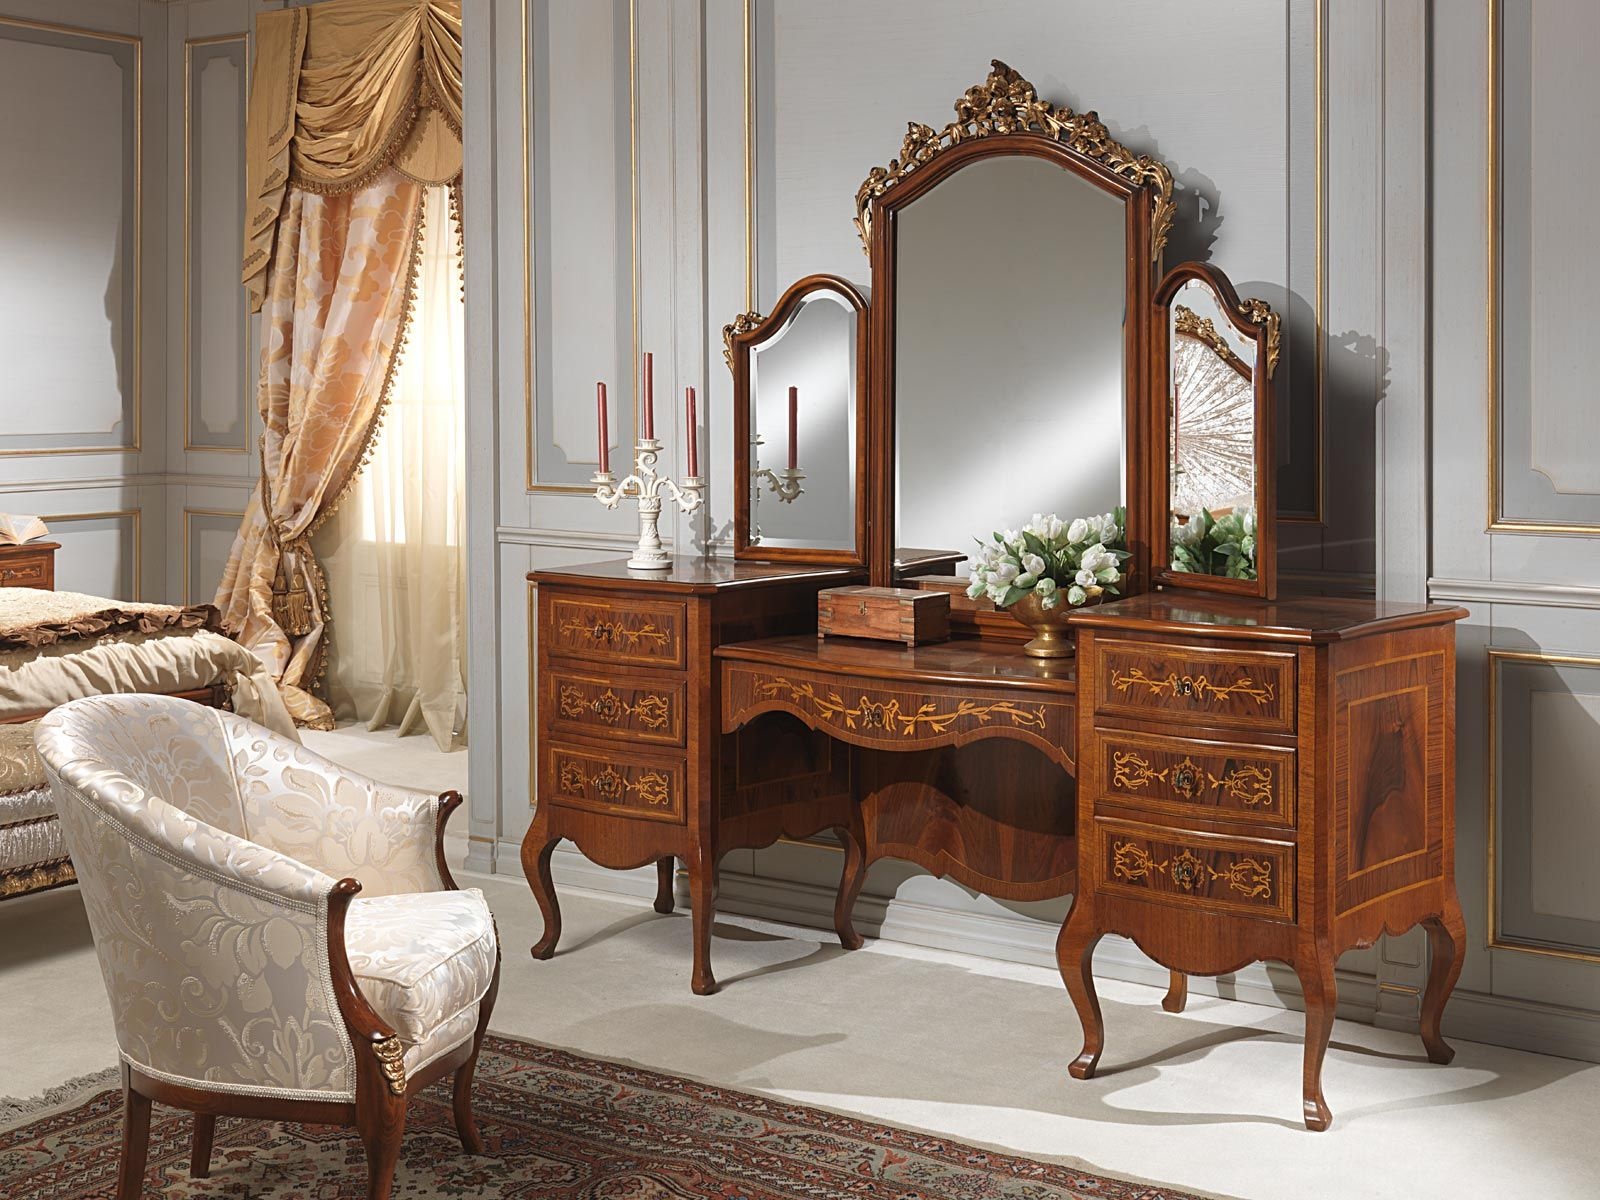 Bedroom dressing table with mirror - Mirror Classic Louvre Bedroom Dressing Table